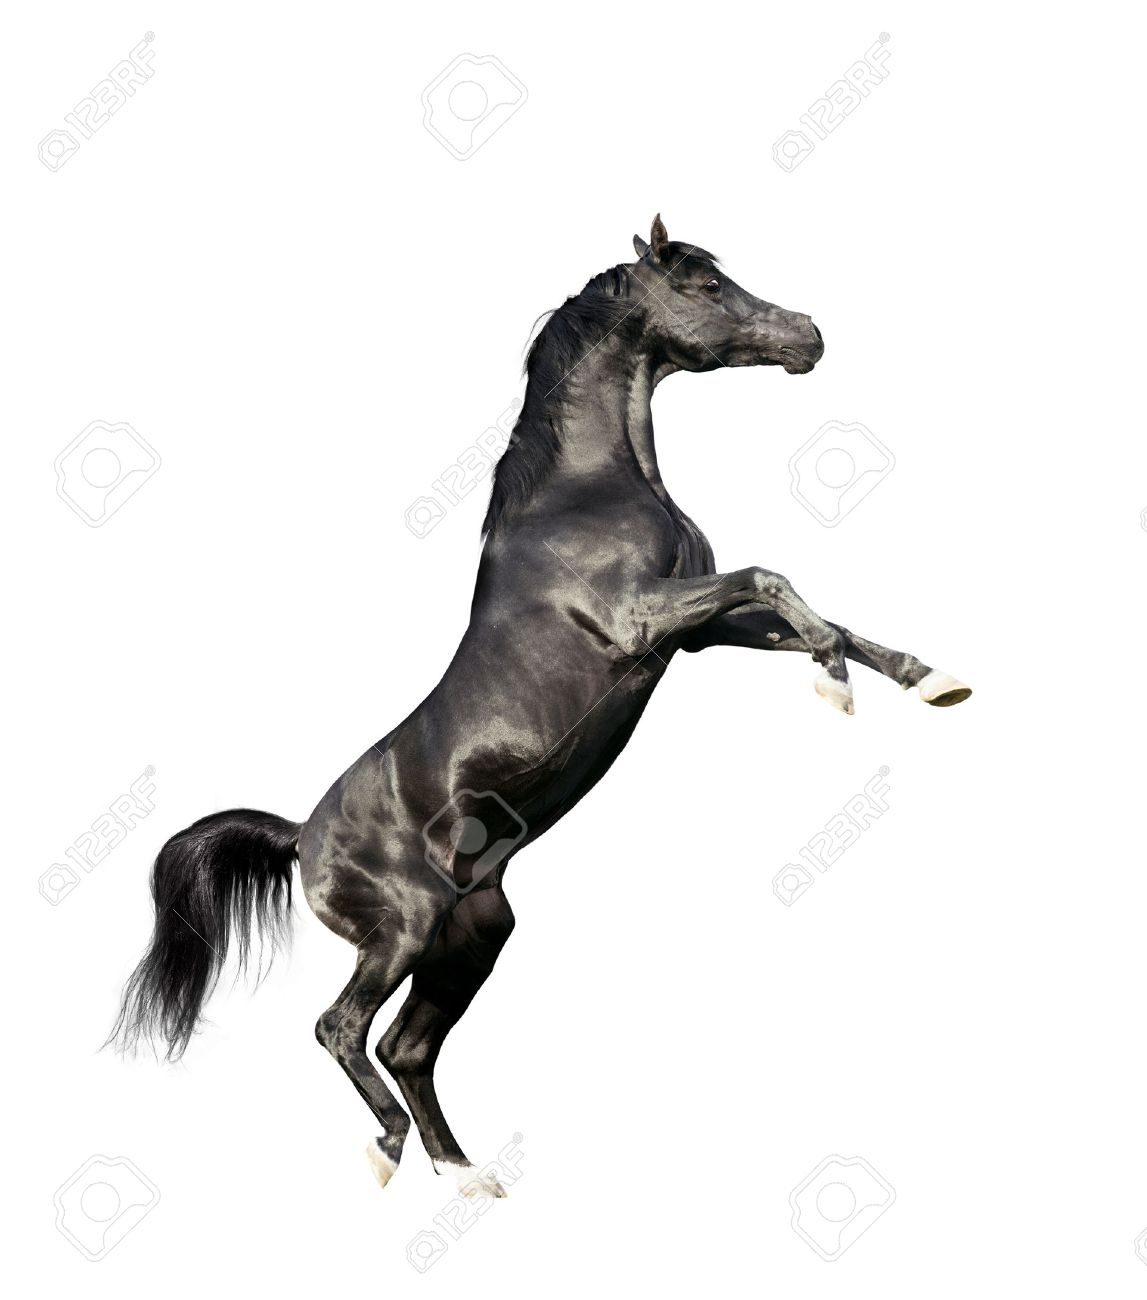 Black Arabian Horse Rearing Isolated On White Background Stock Photo Picture And Royalty Free Image Image 40951613